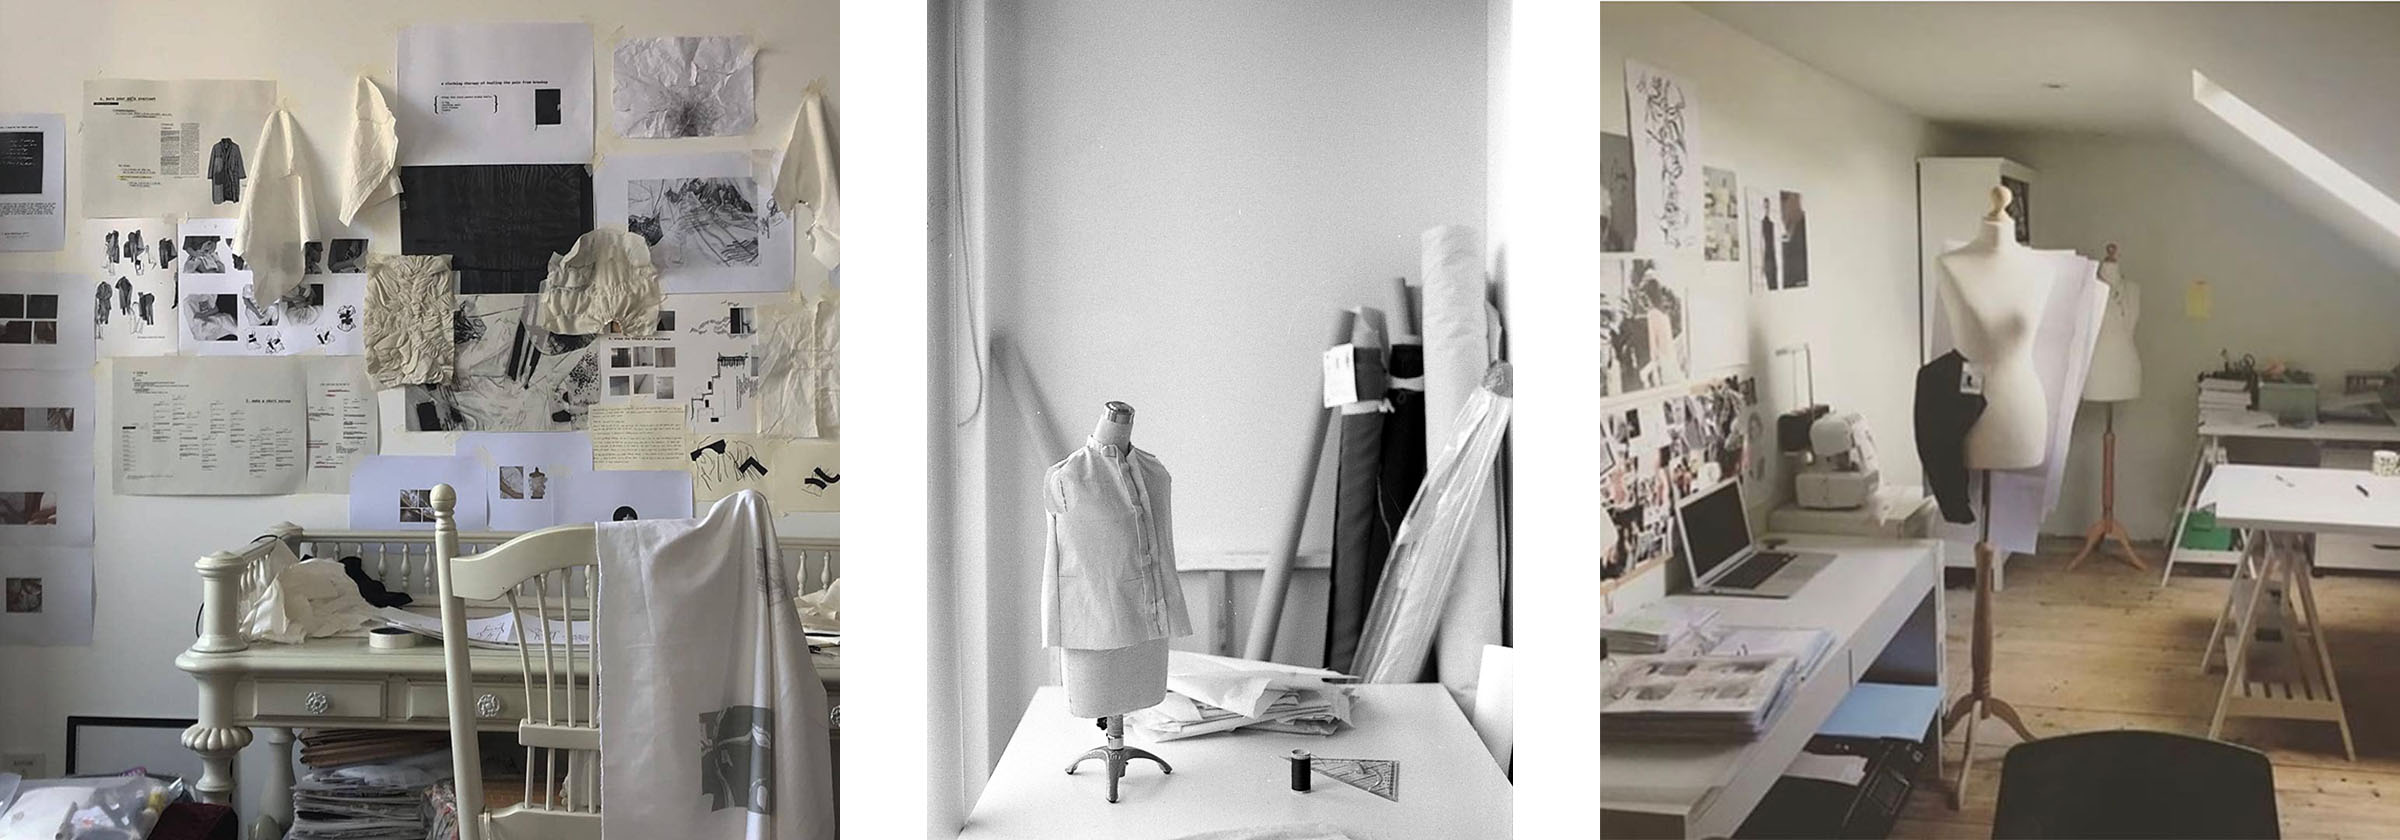 Design studios with different elements like mannequins, moodboards and design patterns